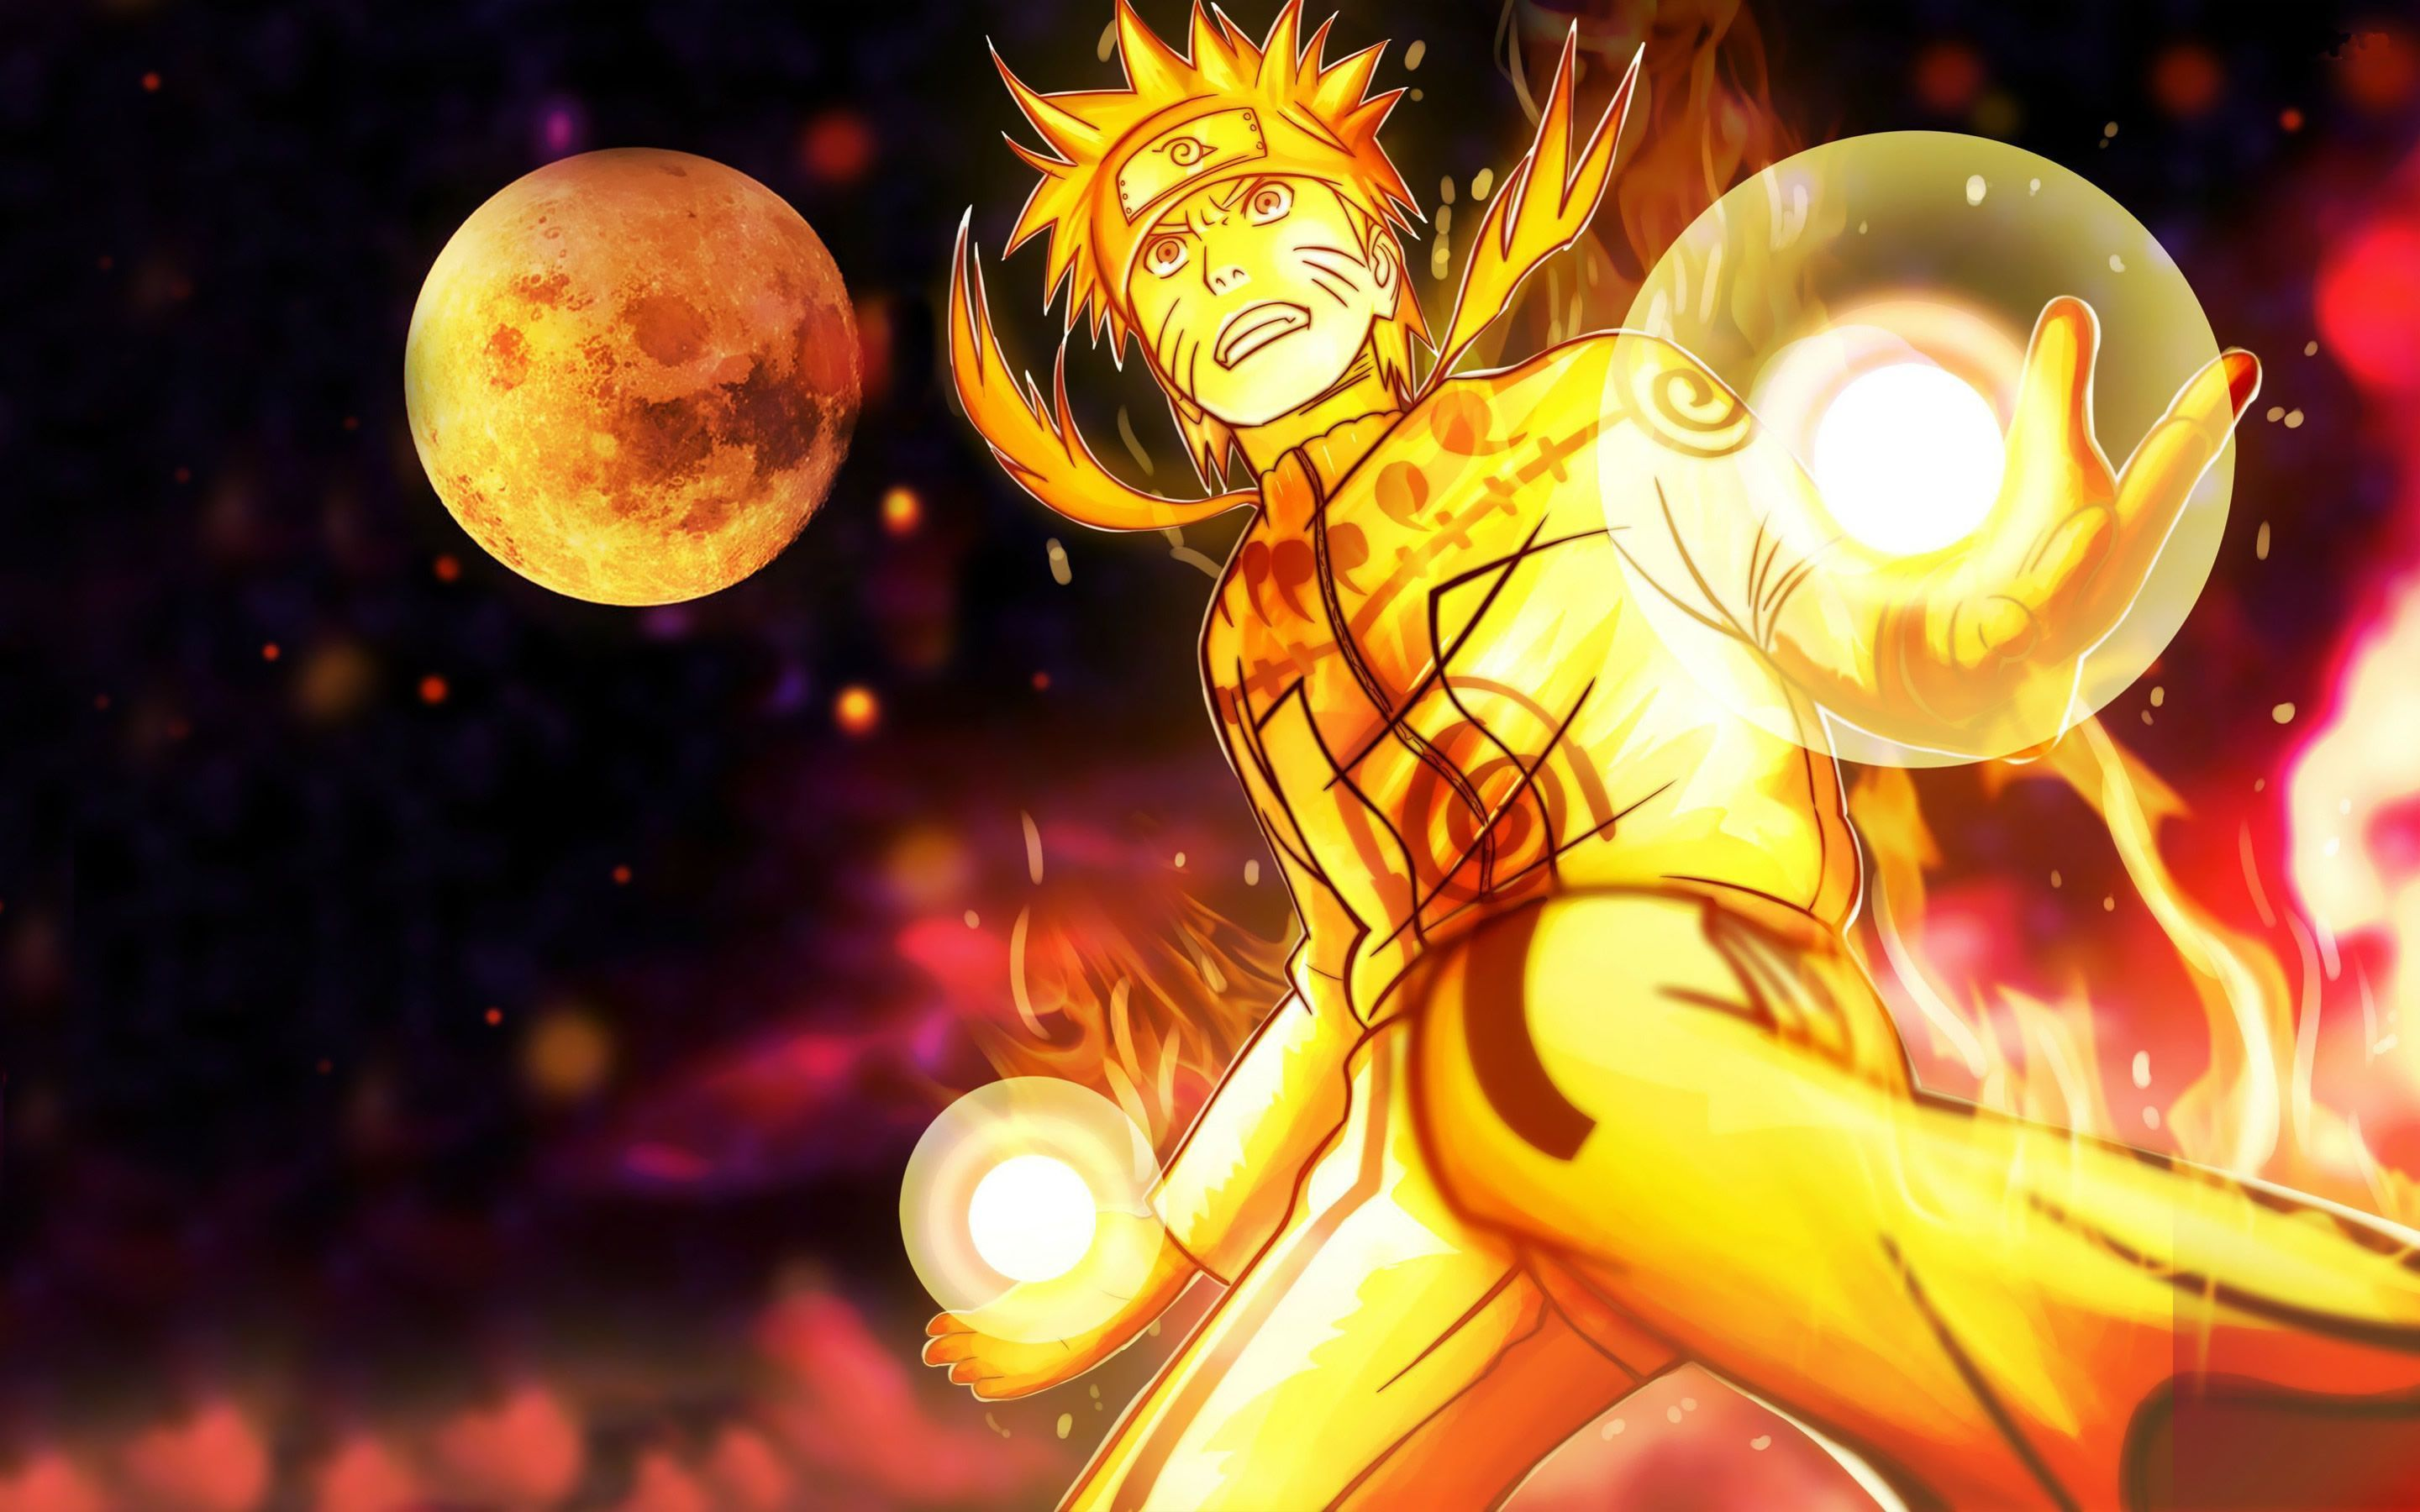 naruto wallpaper hd stay0001